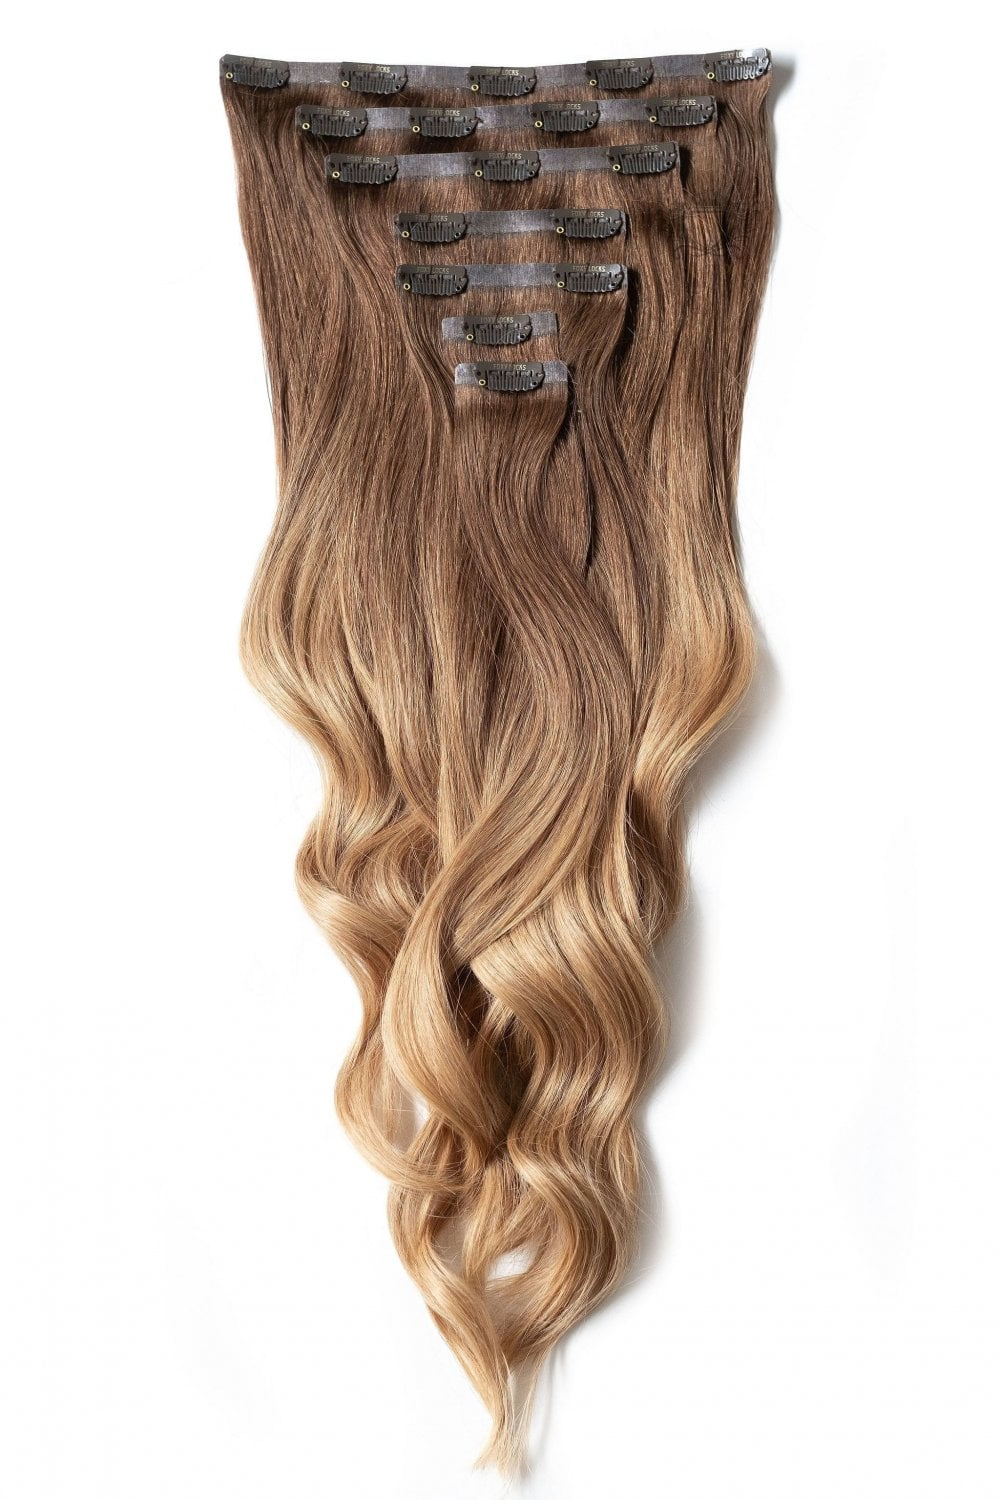 Clip in hair extensions under 20 dollars